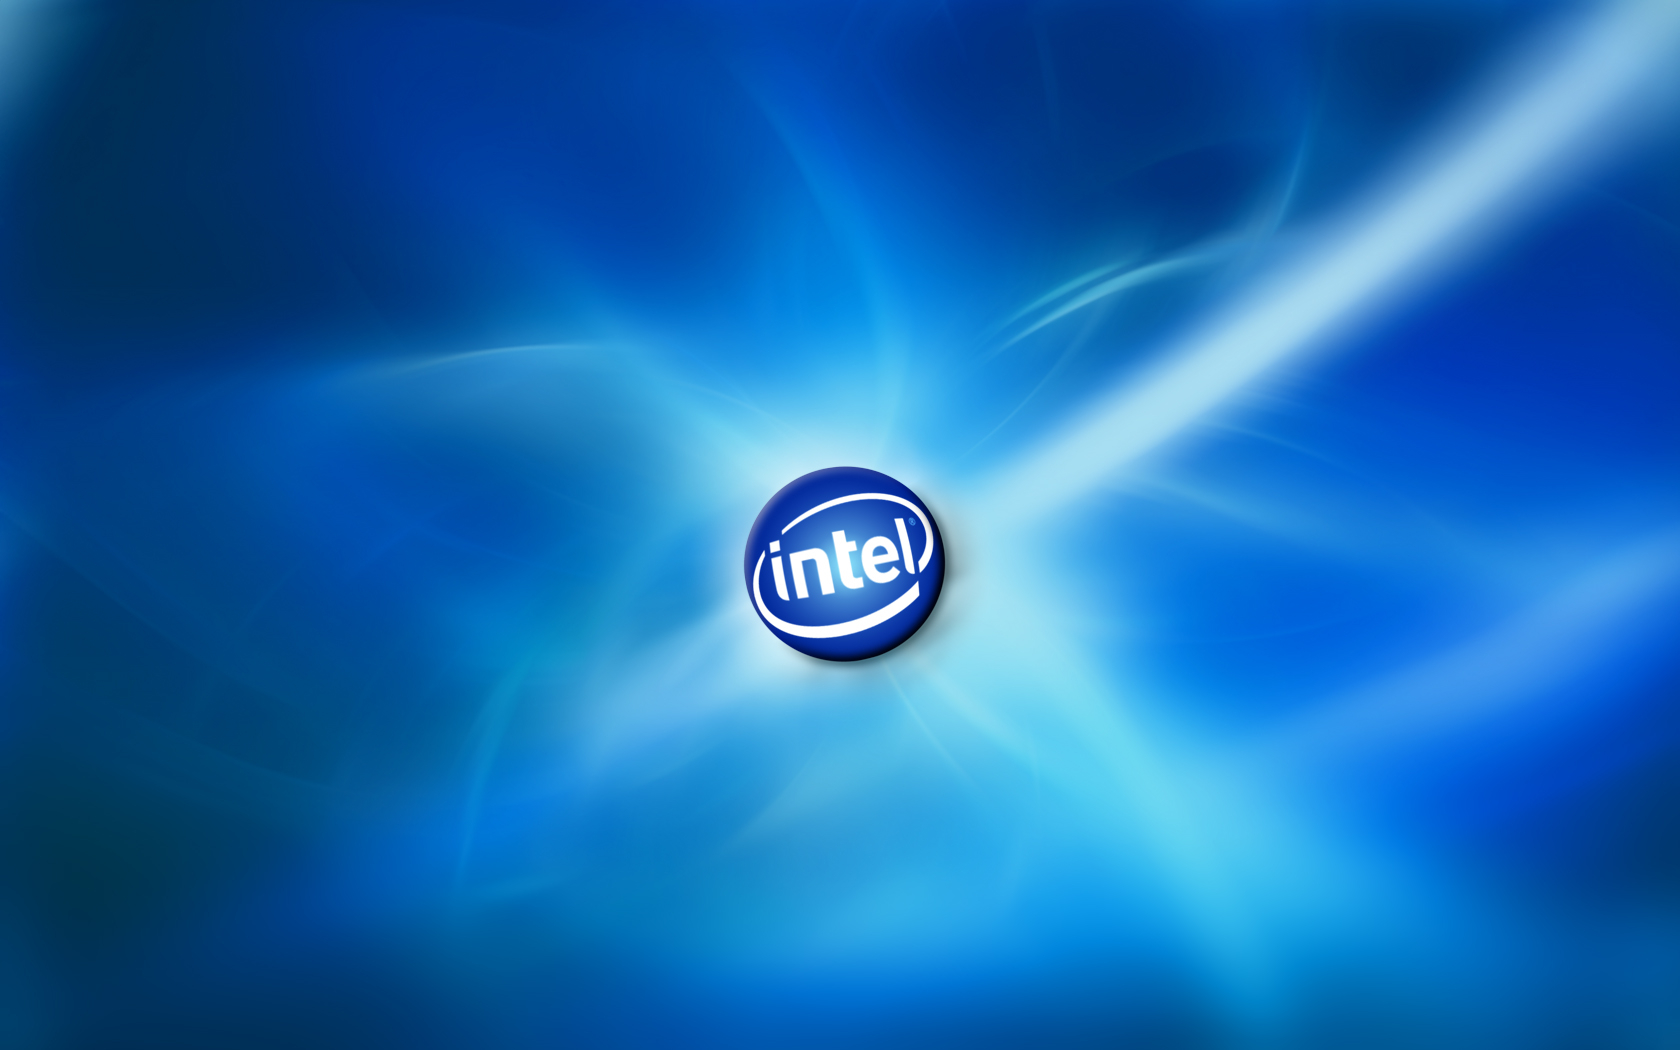 Intel logo wallpaper Rumah IT 1680x1050